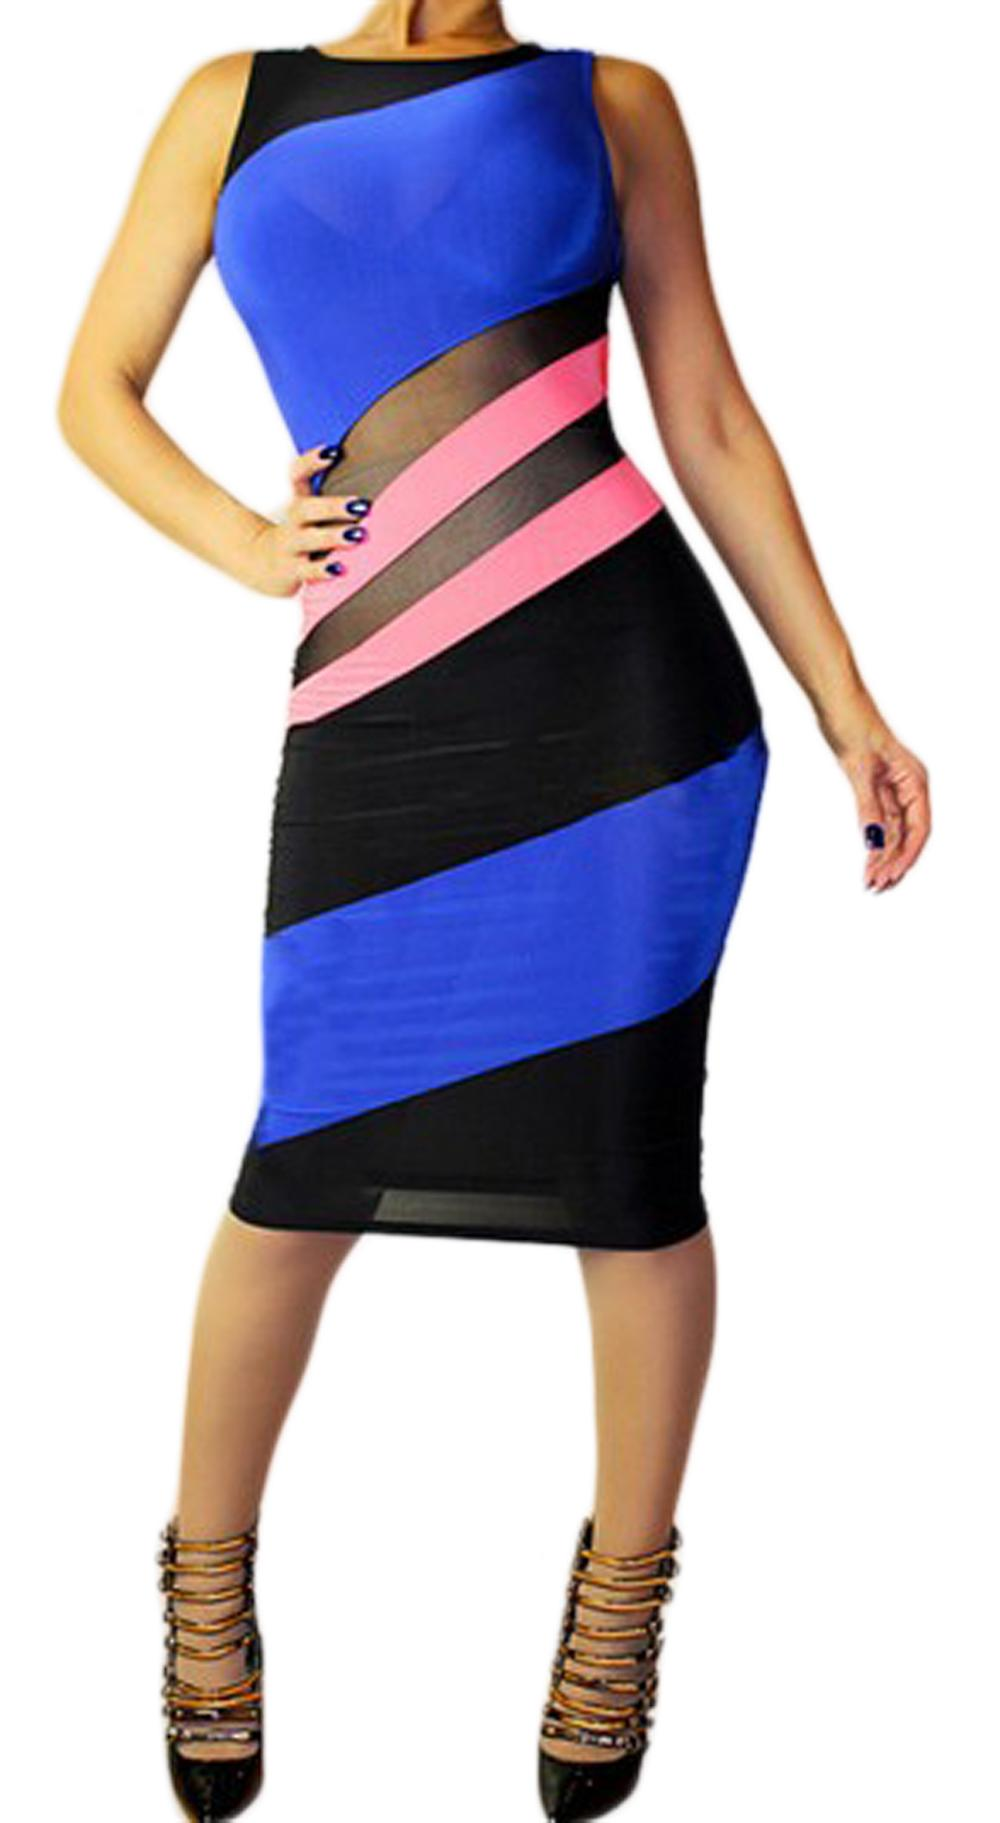 Waooh - Dresses With Colorful Strips Thian